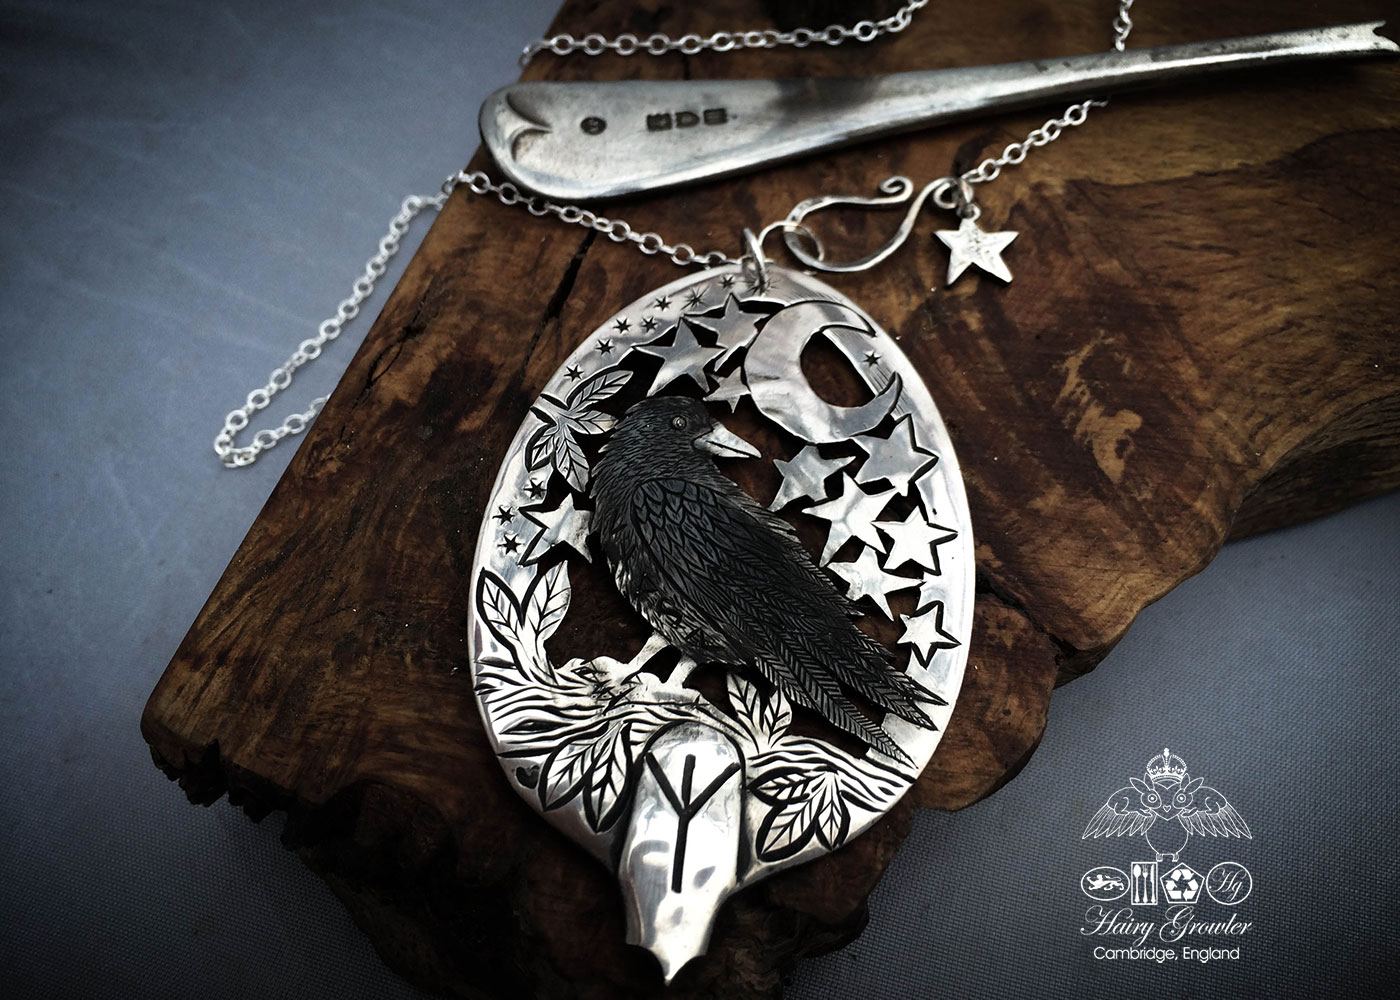 Handcrafted and recycled Georgian silver spoon Raven and Runes necklace made in Cambridge